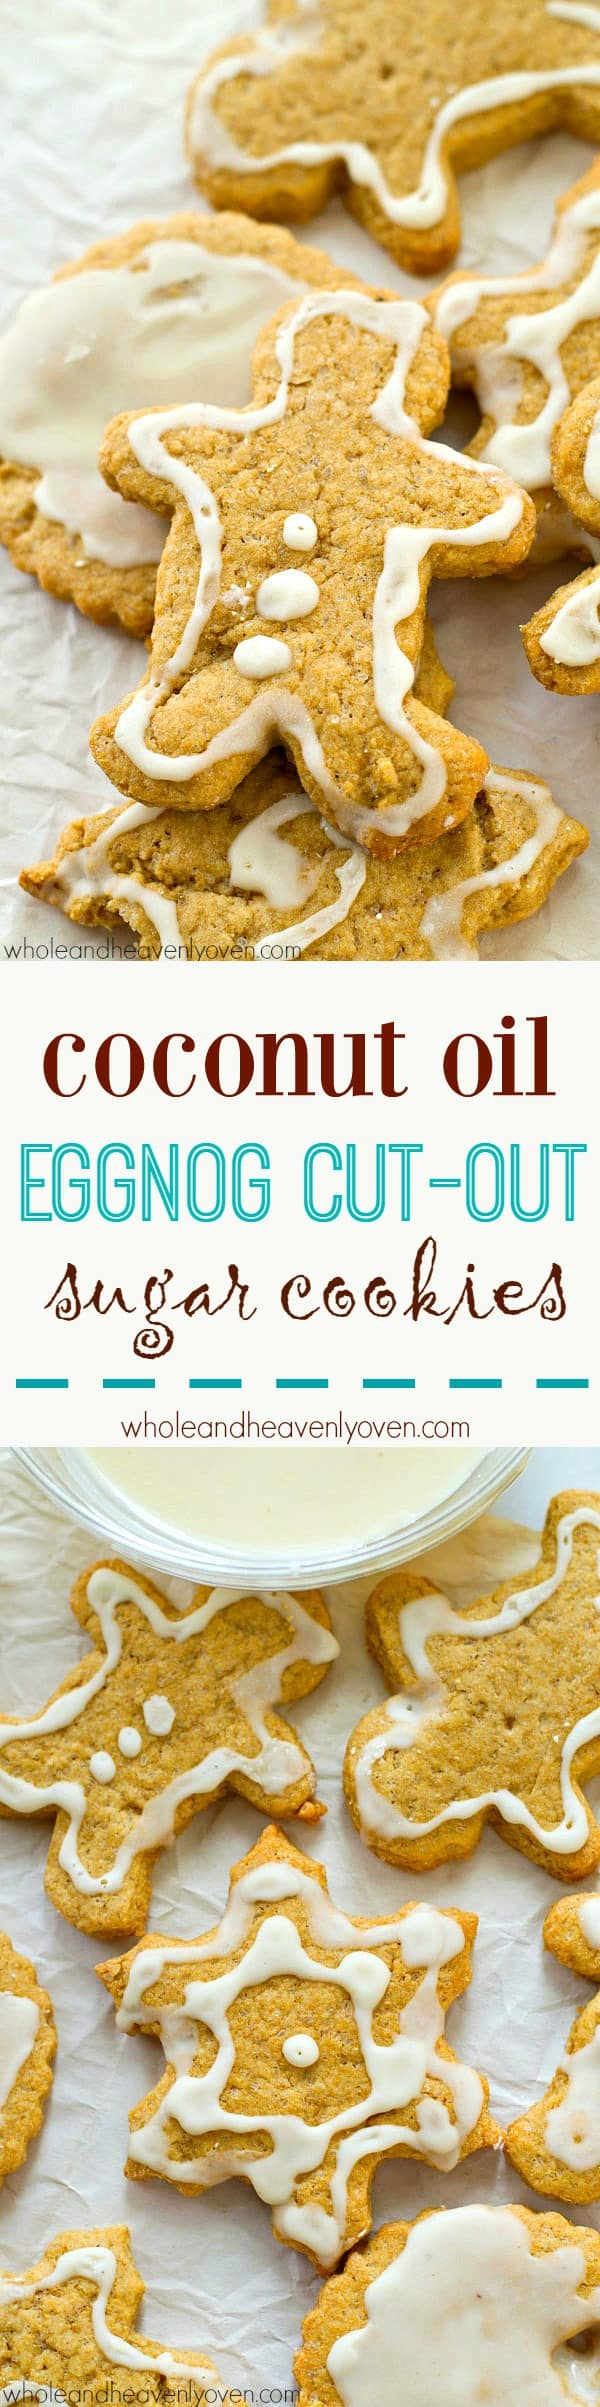 Nobody will believe that these soft and chewy cut-out sugar cookies use coconut oil instead of butter! Use your favorite frosting or my eggnog icing to decorate them.